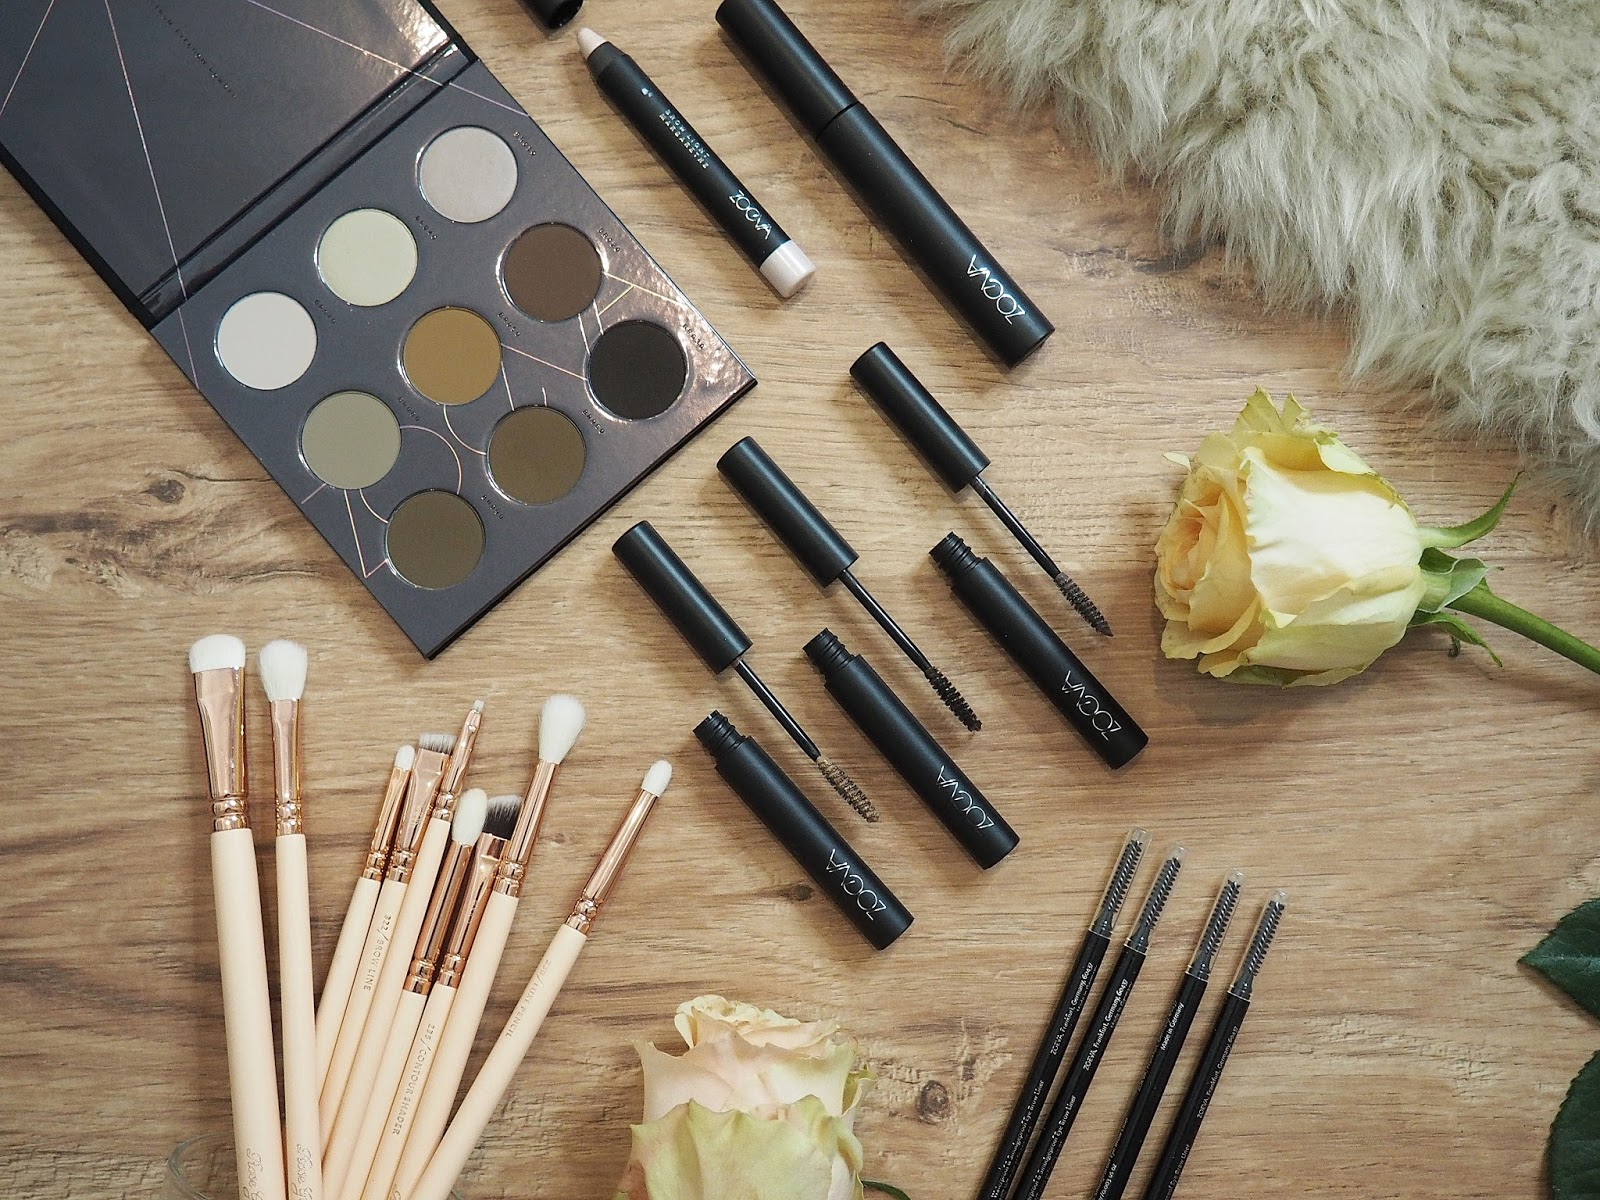 e33432489af Zoeva have launched some incredible new products this year already, from  brushes to a stunning new eyeshadow palette - they are absolutely killing  it this ...